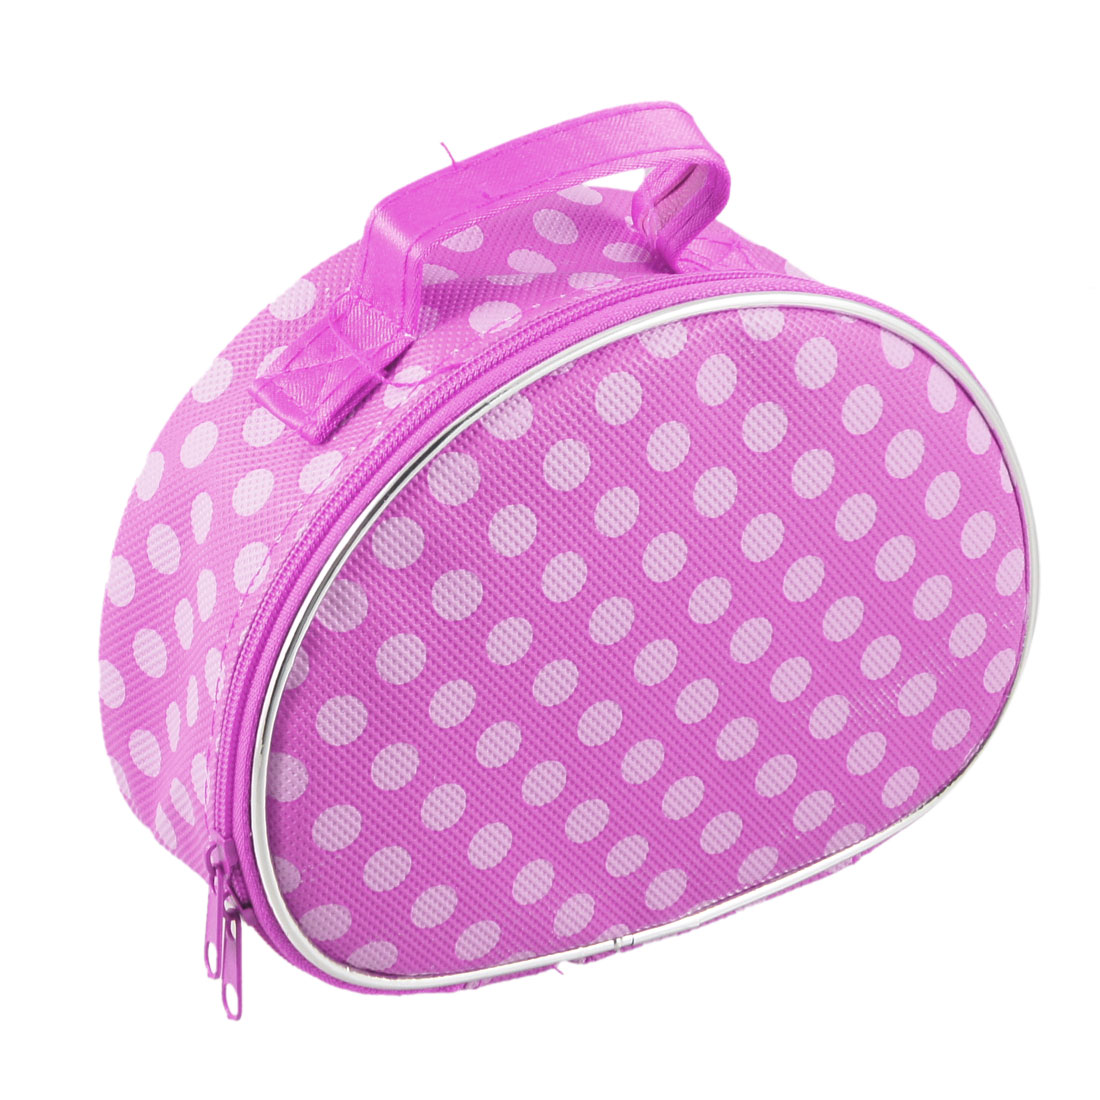 Dots Print Zip Closure Two Tone Pink Cosmetic Holder Bag